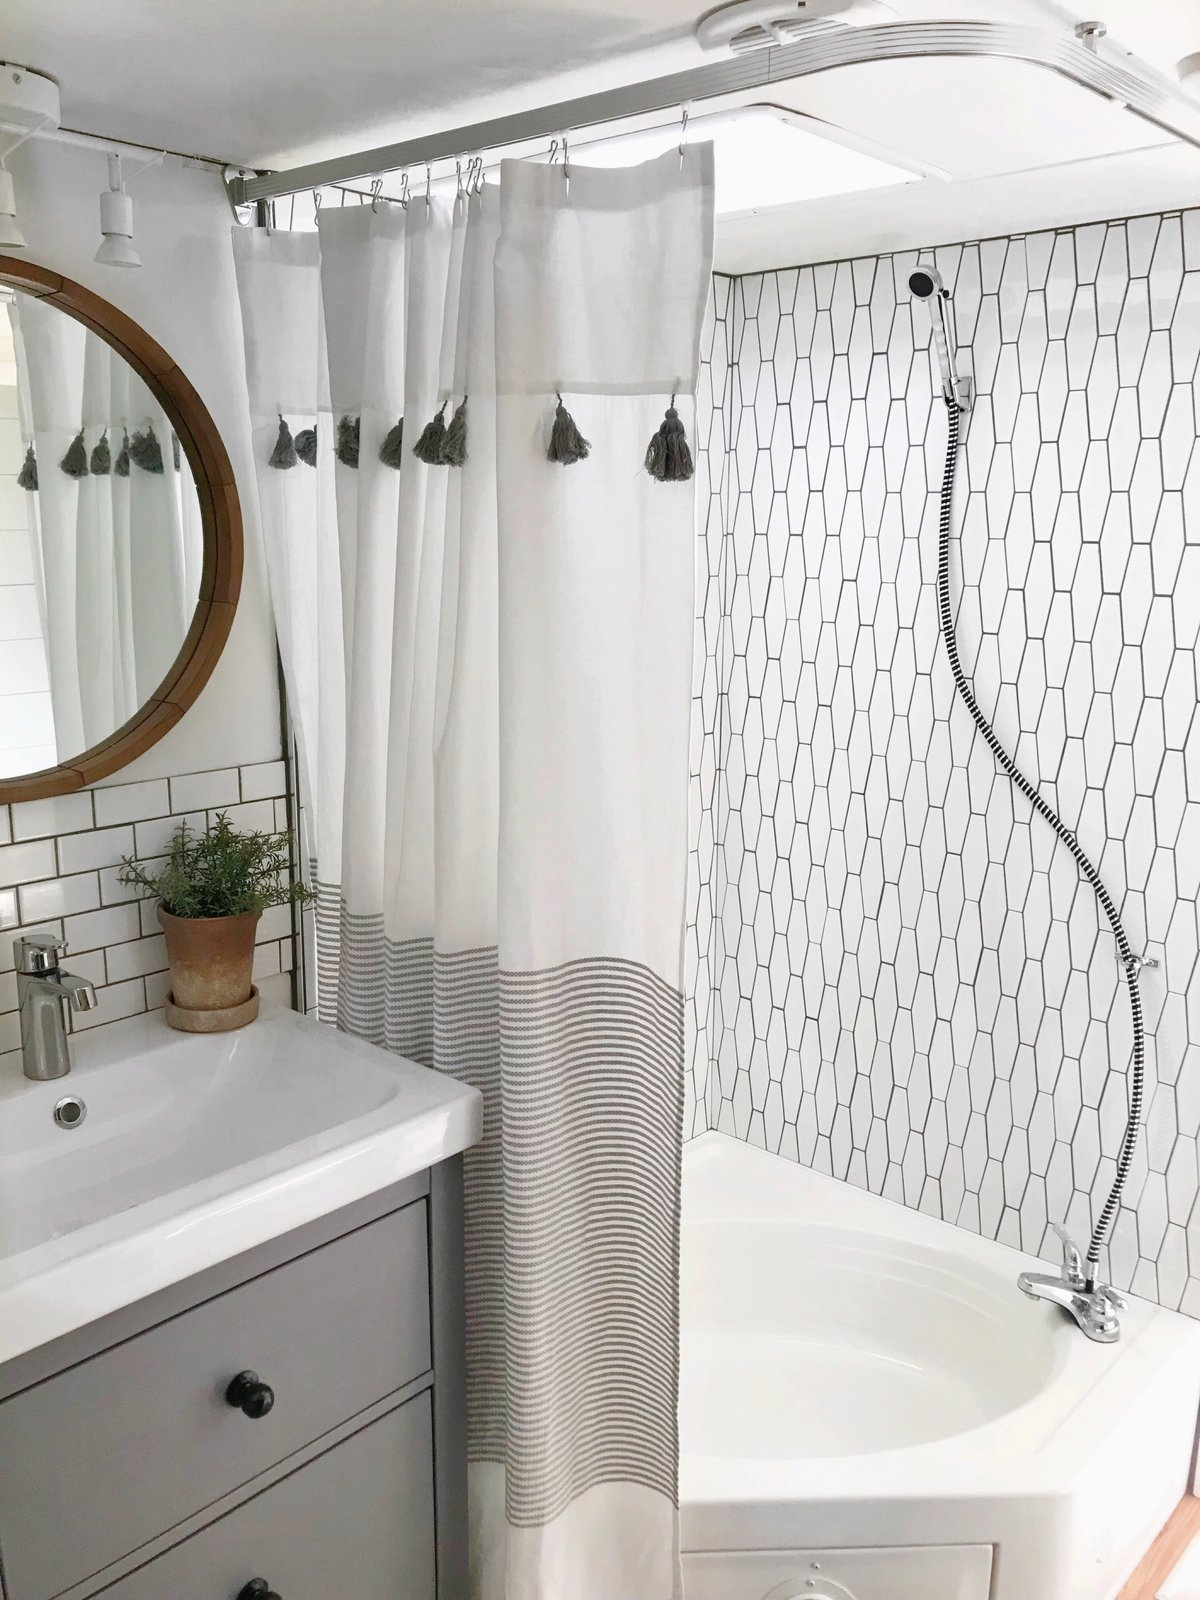 Bath Room, Track Lighting, Subway Tile Wall, Corner Shower, and Drop In Sink A renovated bathroom with a new showerstall and tiled wall.  Photo 9 of 16 in Hit the Road With This Chic Camper on Sale For $28K